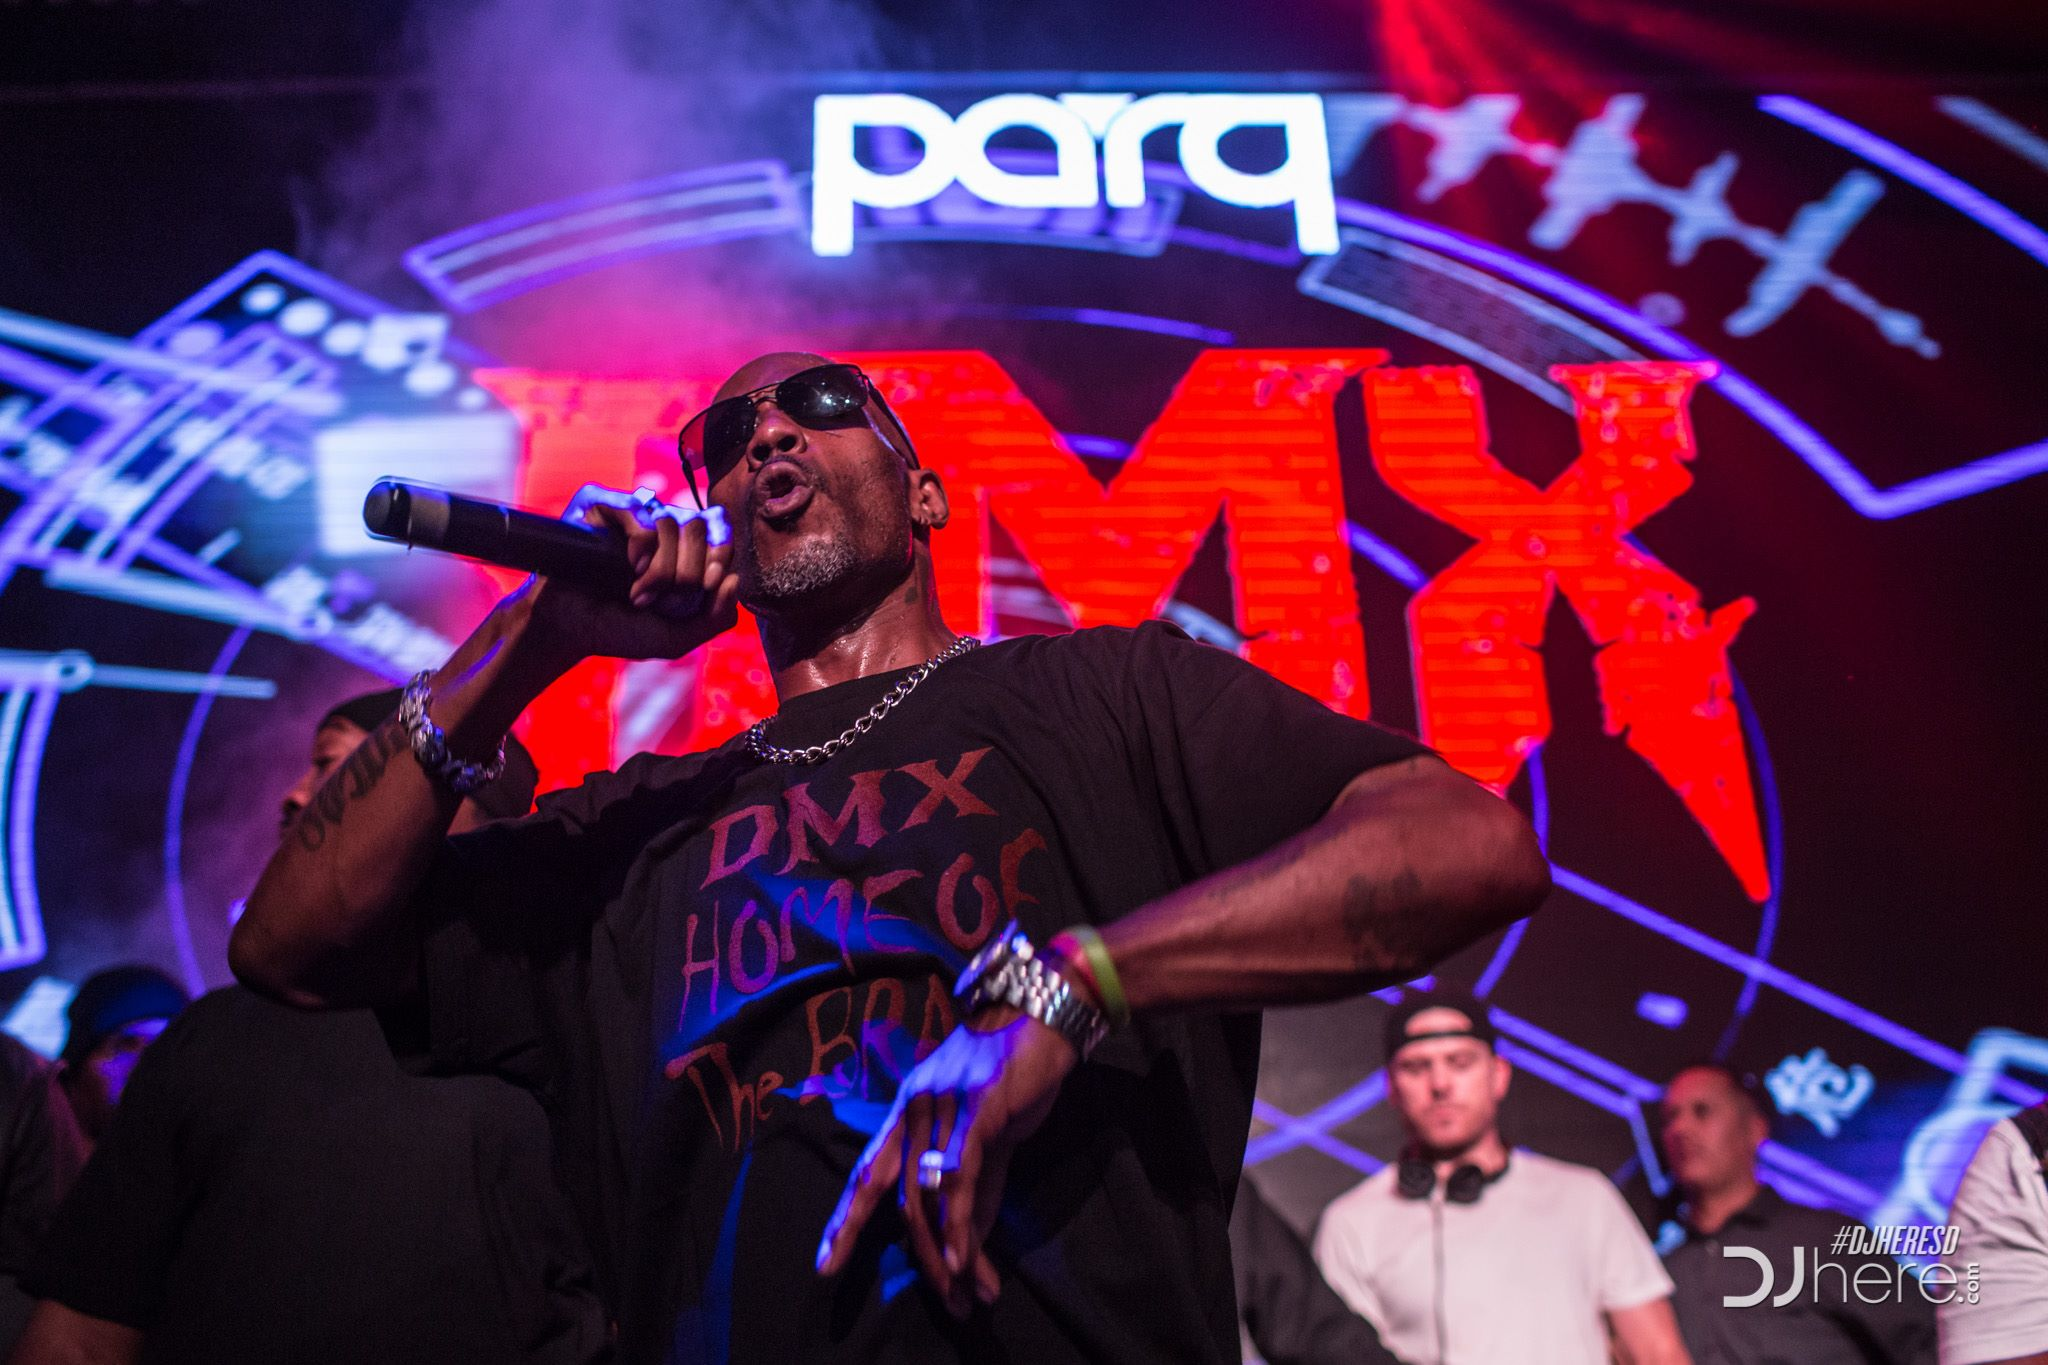 DMX at Parq Nightclub